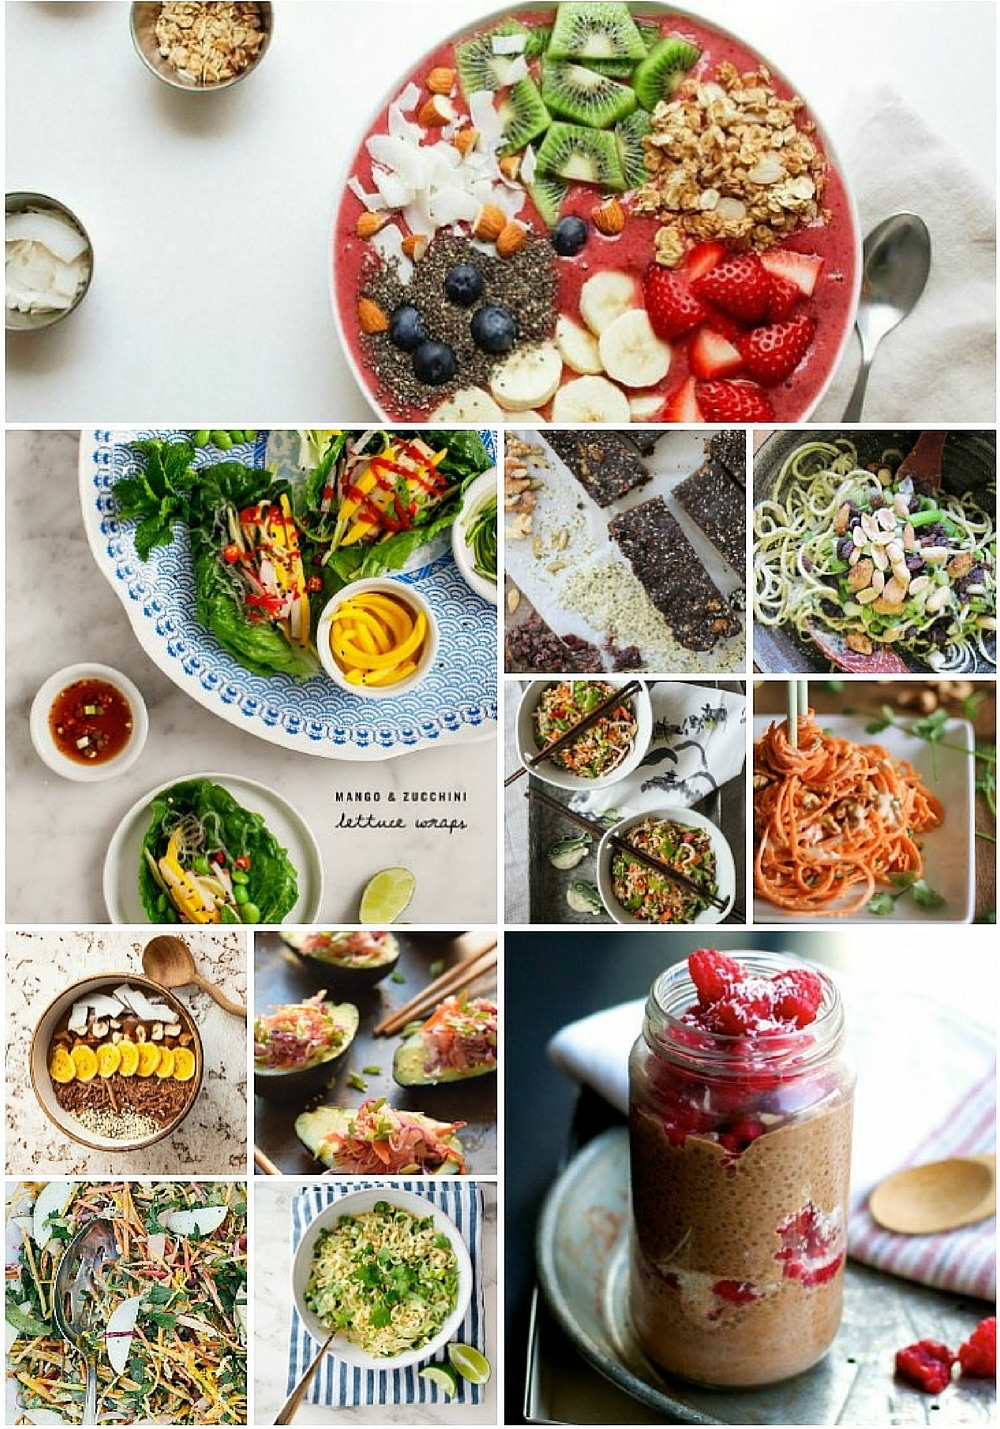 21 awesome raw food recipes for beginners to try yuri elkaim forumfinder Image collections